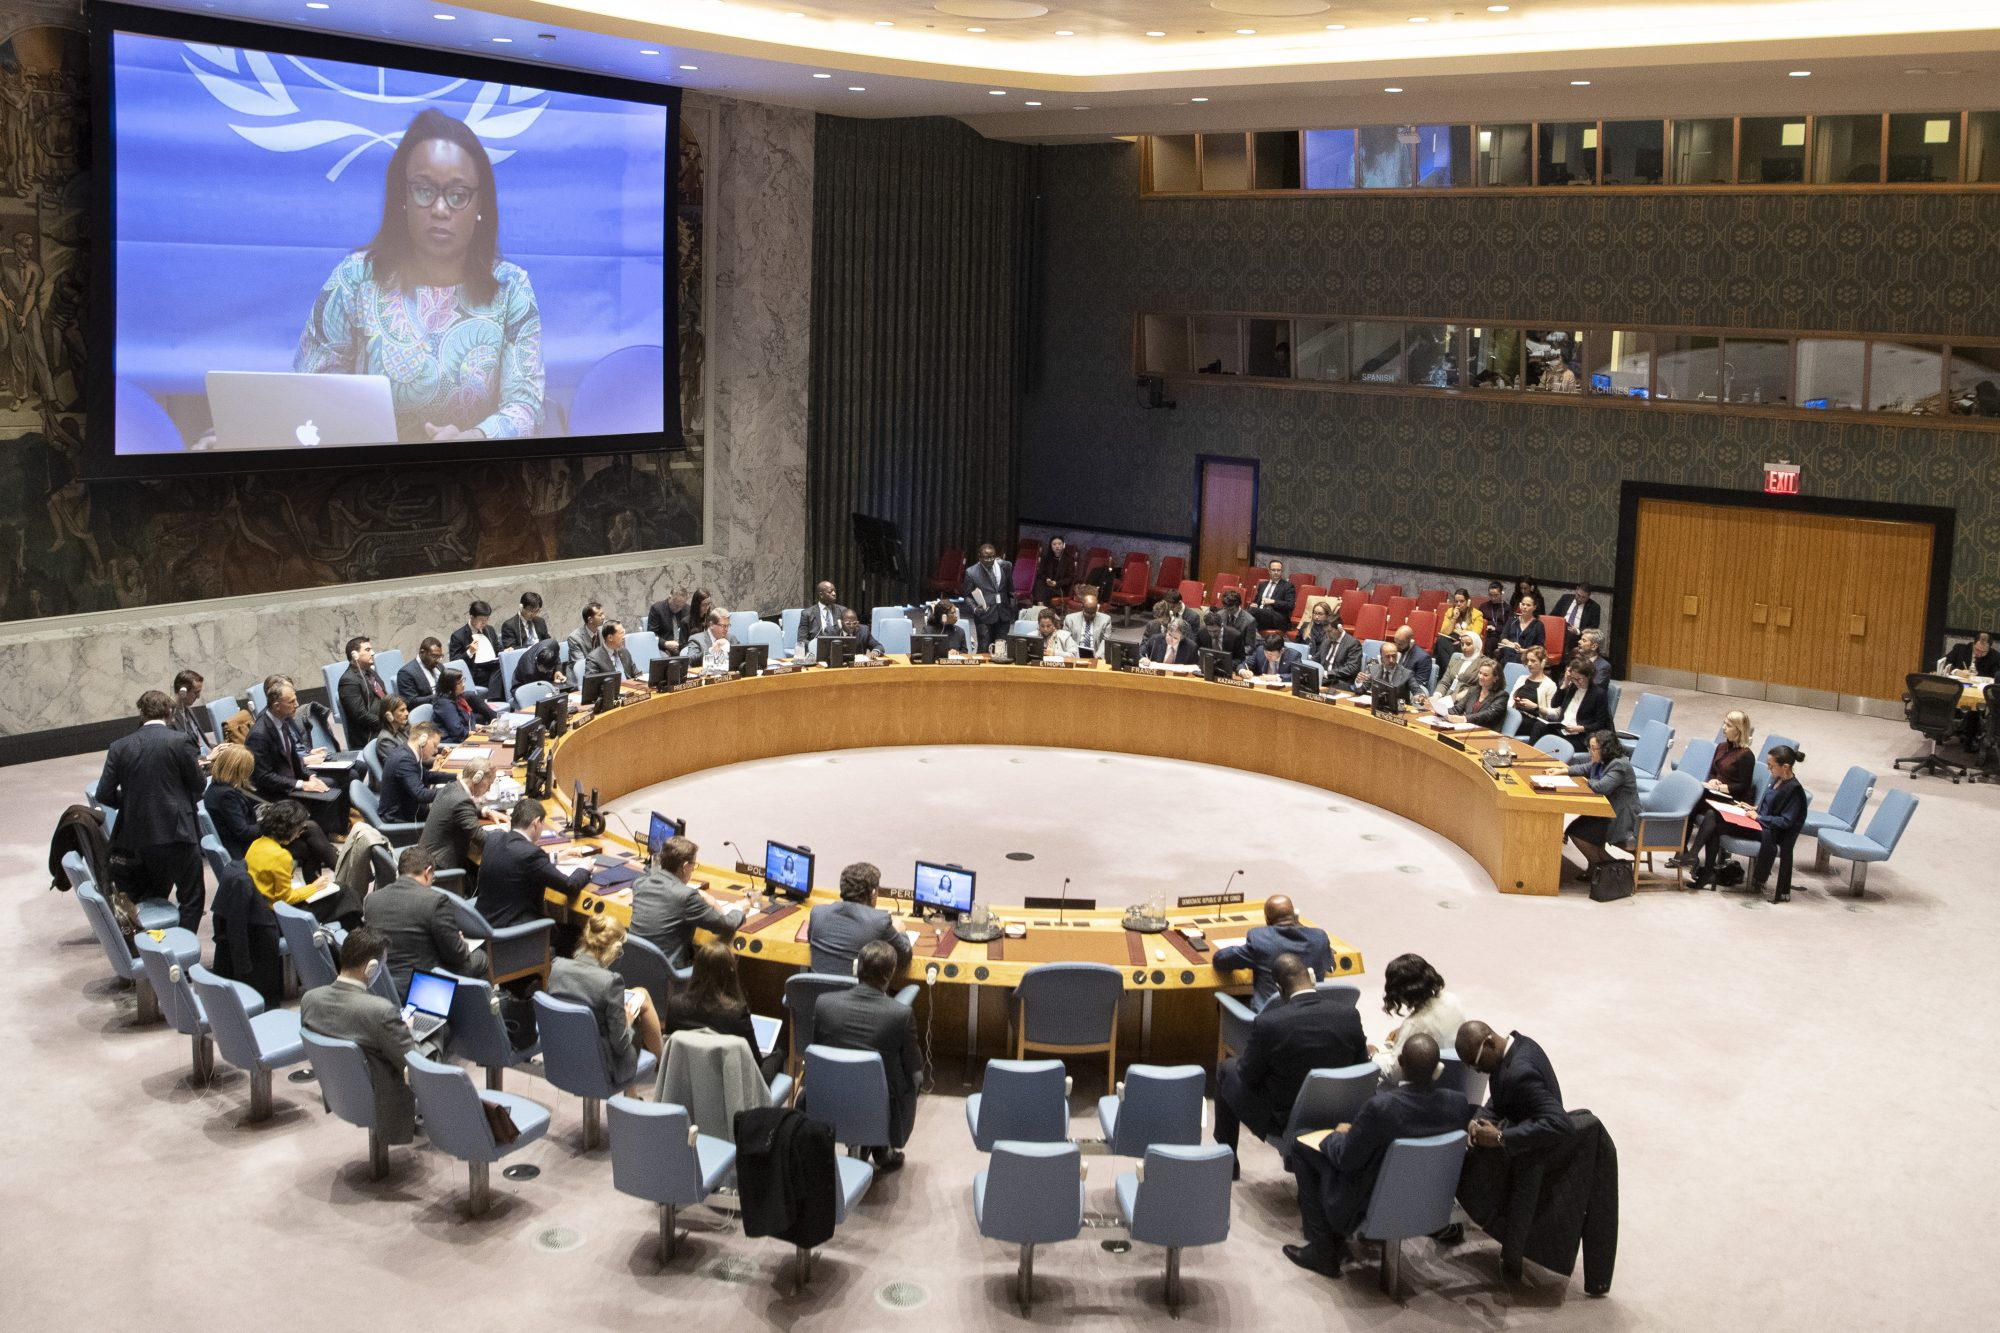 UN Security Council Briefing on the Democratic Republic of the Congo by Josephine Mbela